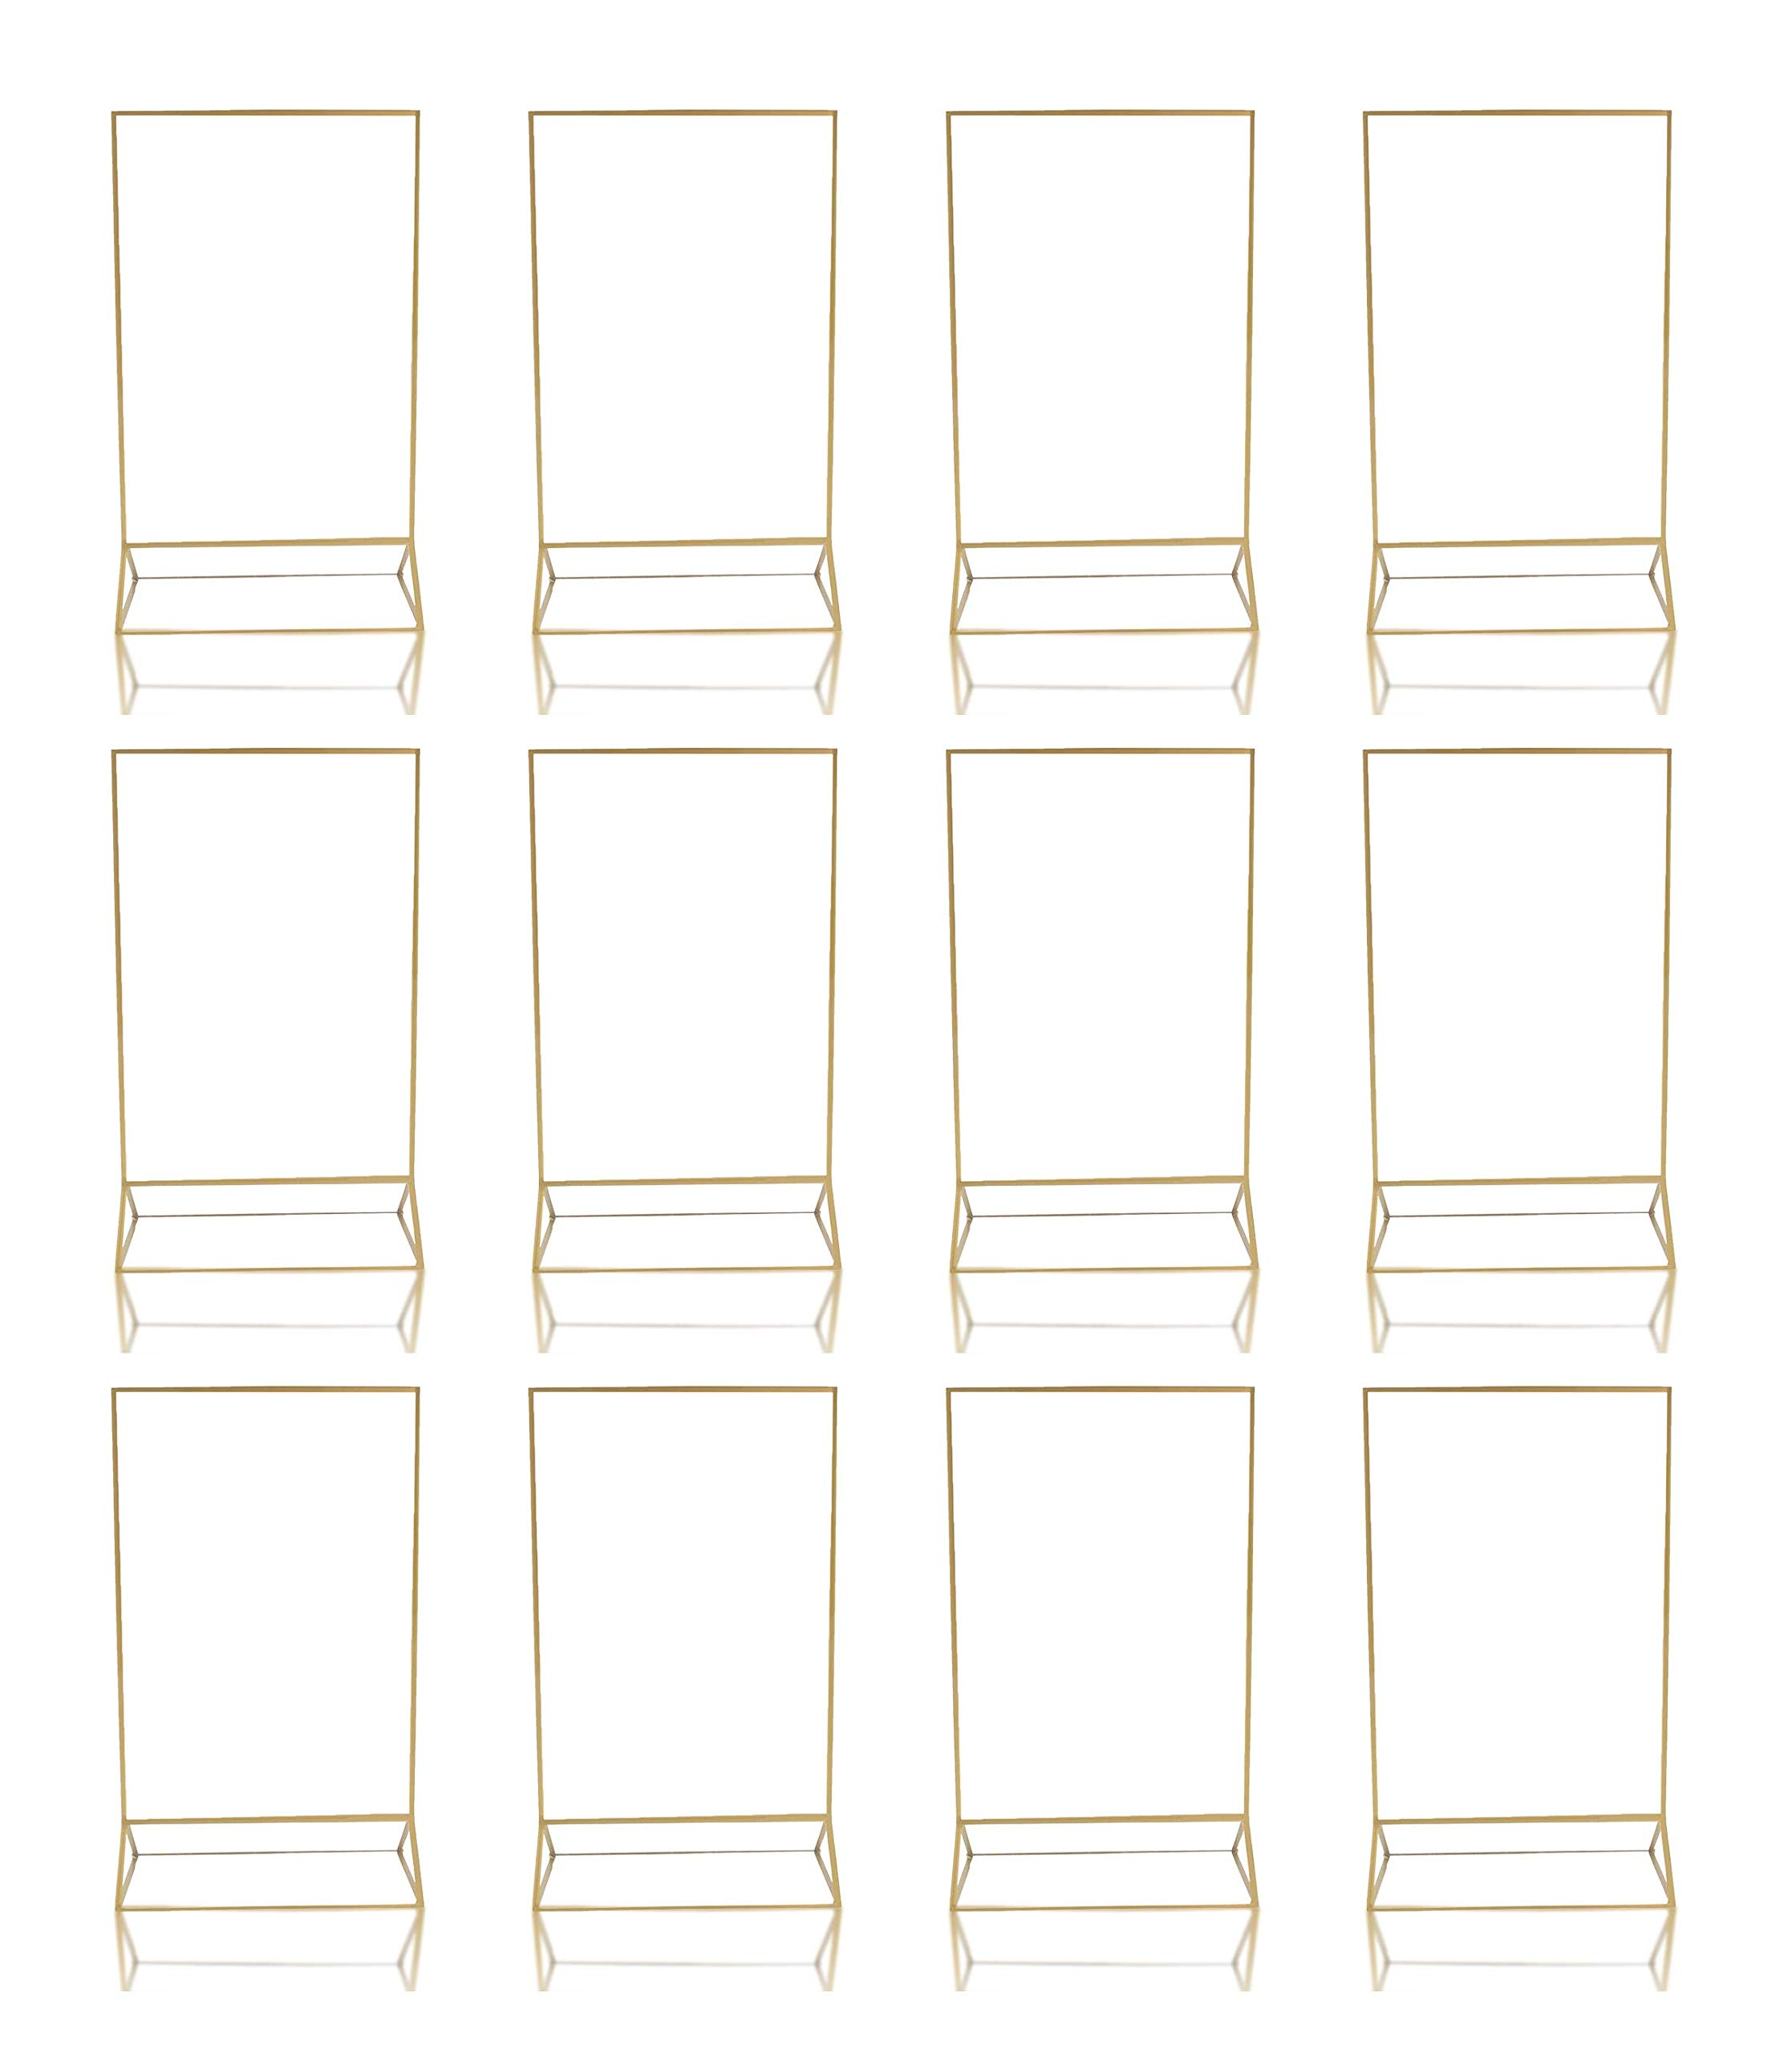 Gold Acrylic Frame Picture Table Holder | Ideal for Double Sided Sign, Clear Photo Holders, Menu Set, Art Display, Wedding Number Stand Decor, Set of 12 5' x 7 inch Frames